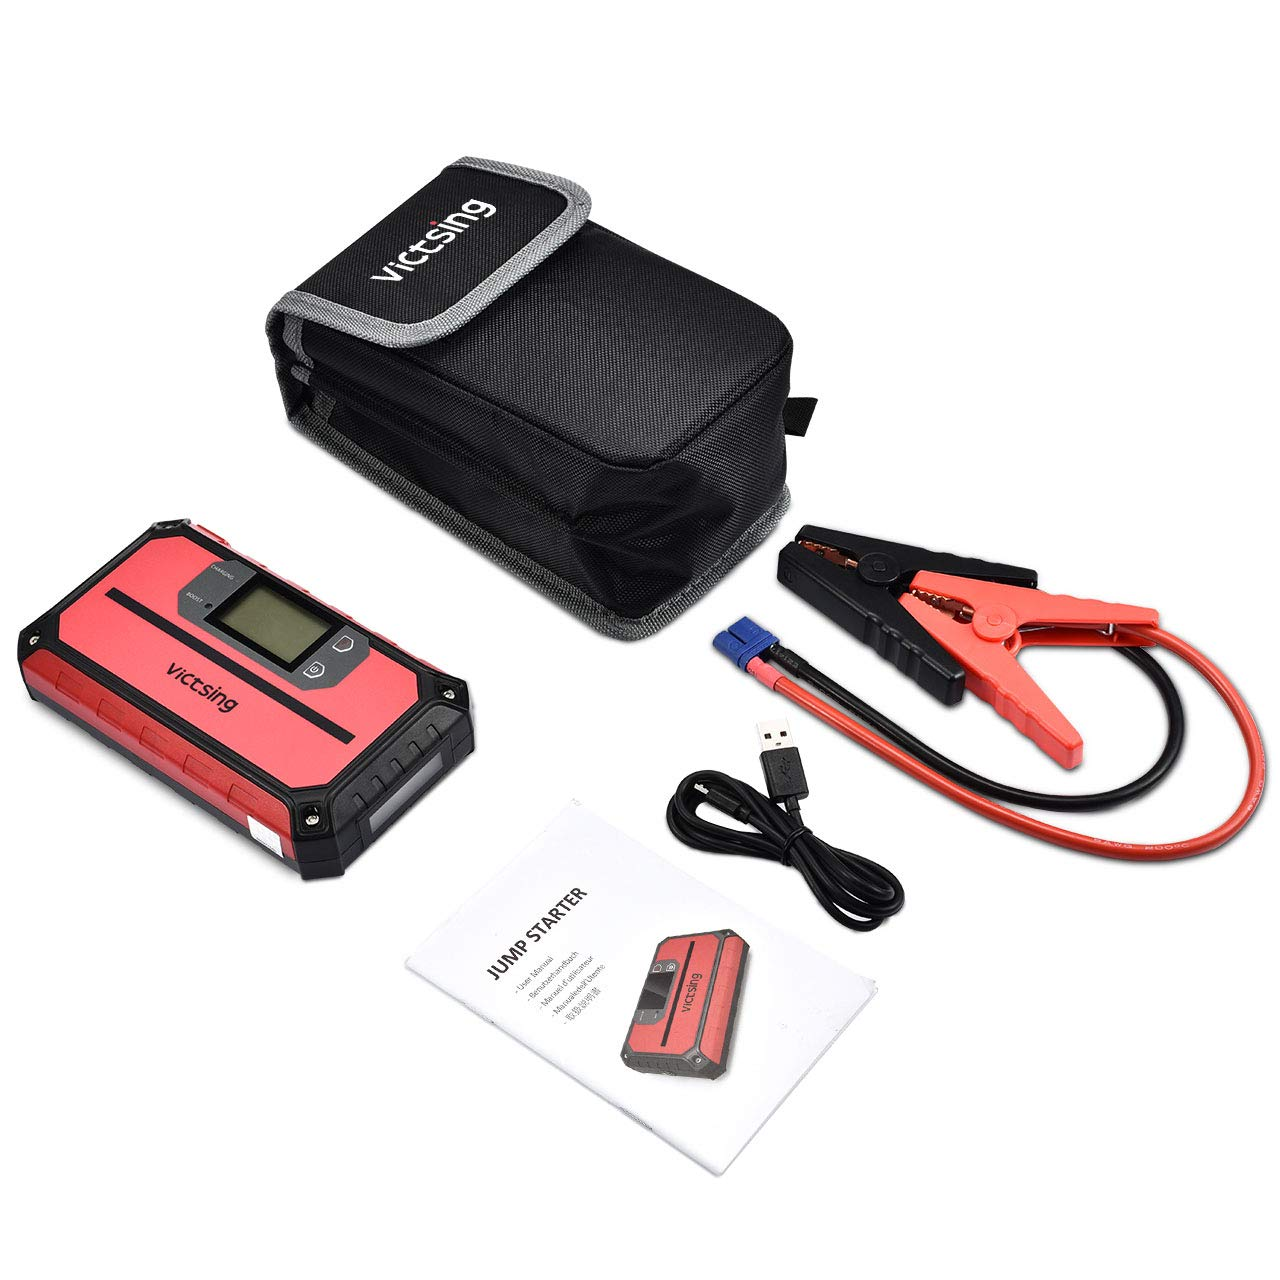 LED Flashlight 12V Power Bank with DC Port Built-in Smart Protection VicTsing 1000A 20800mAh Super Safe Auto Battery Booster with USB Quick Charge Up to 8.0L Gas or 6.0L Diesel Car Jump Starter